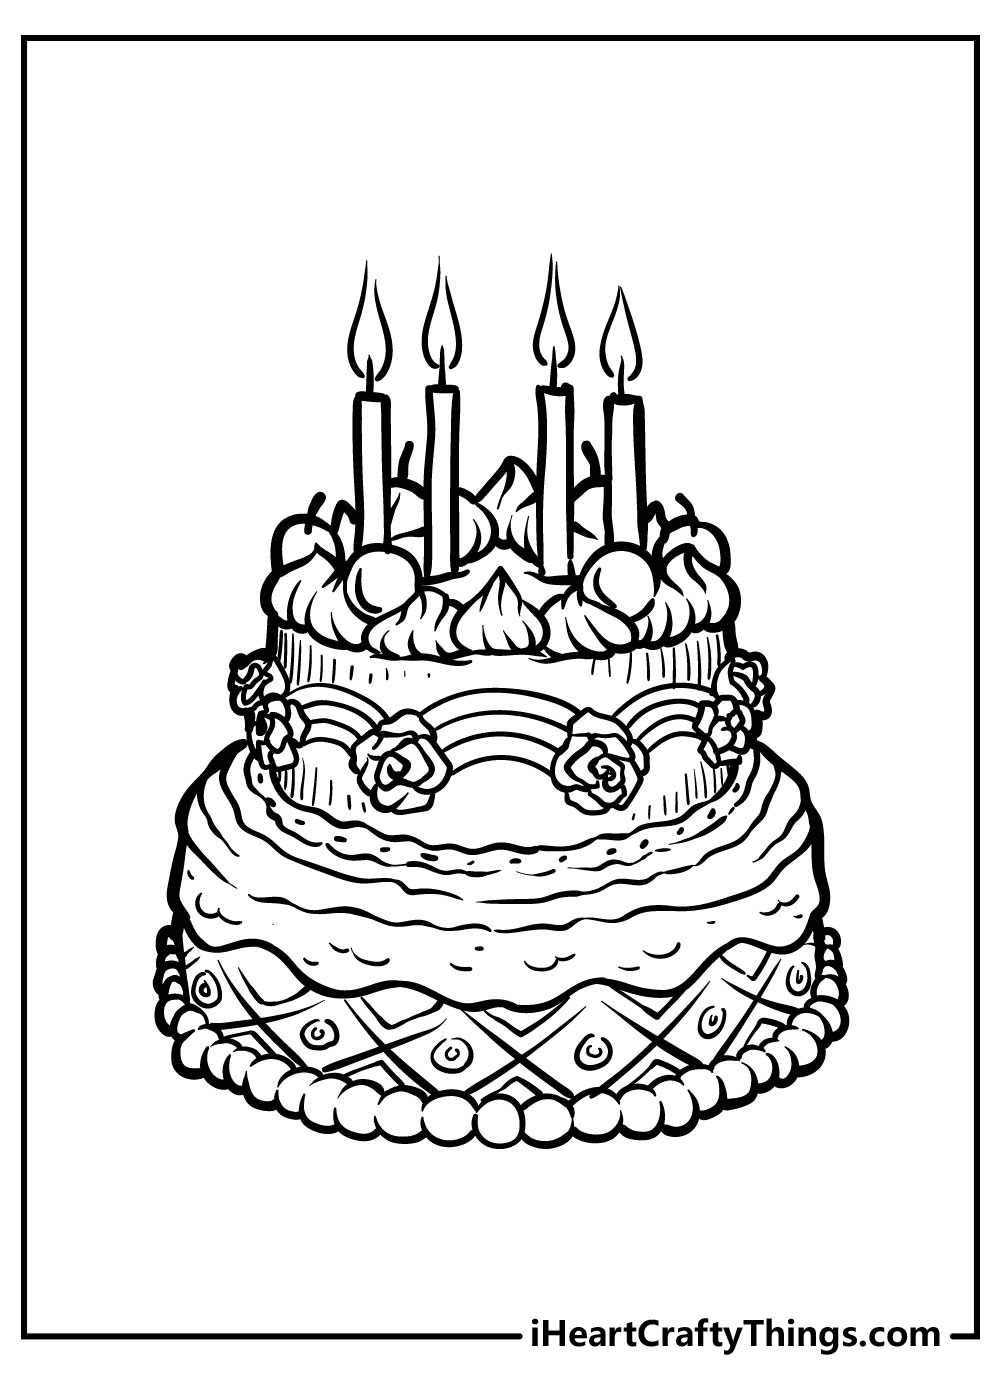 happy birthday cake coloring pages for girl